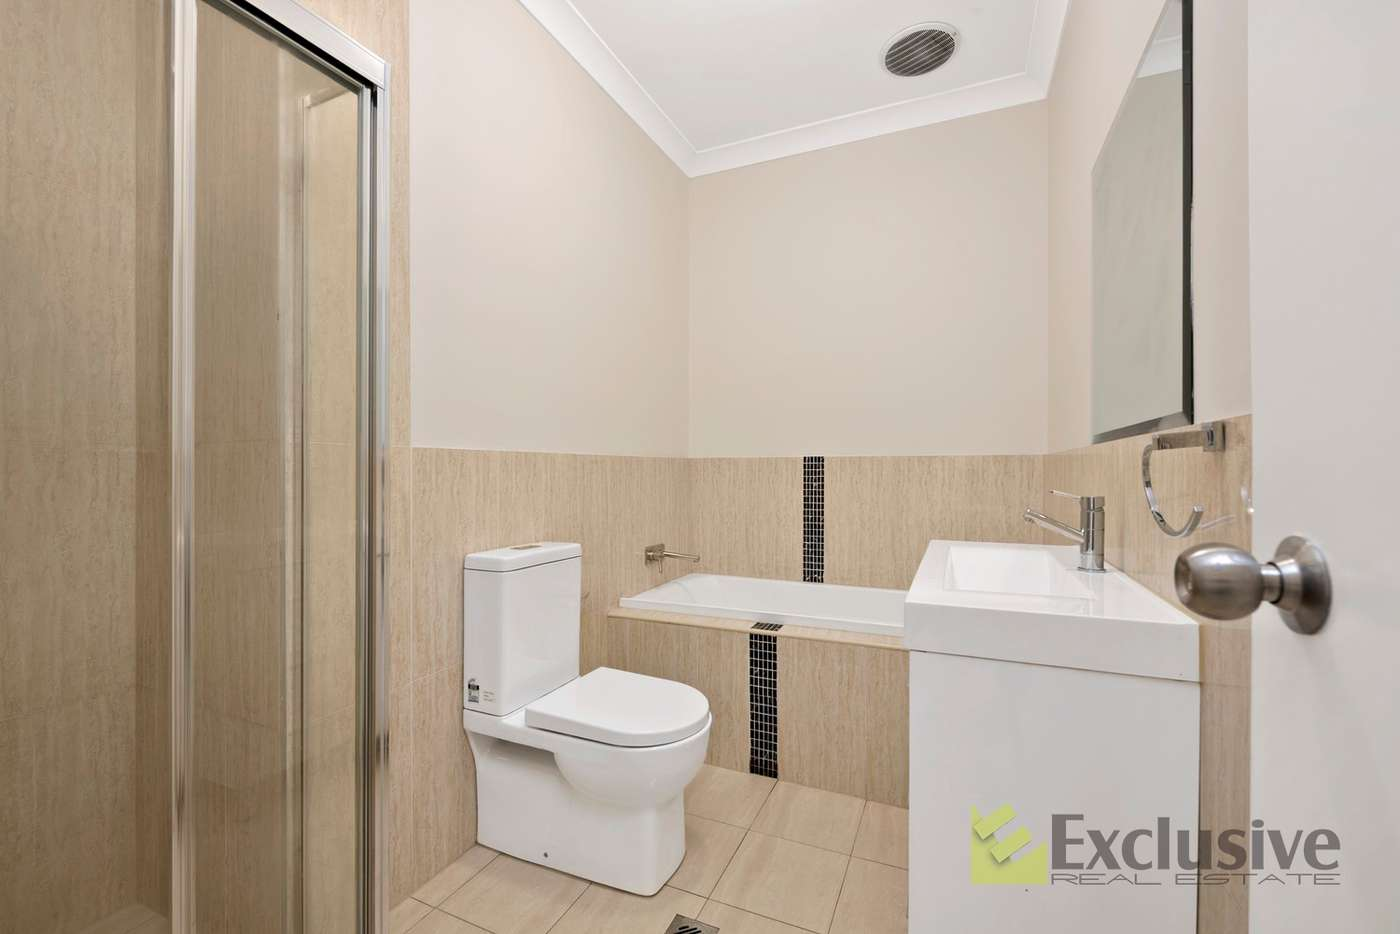 Sixth view of Homely villa listing, 16/46-48 O'Brien Street, Mount Druitt NSW 2770